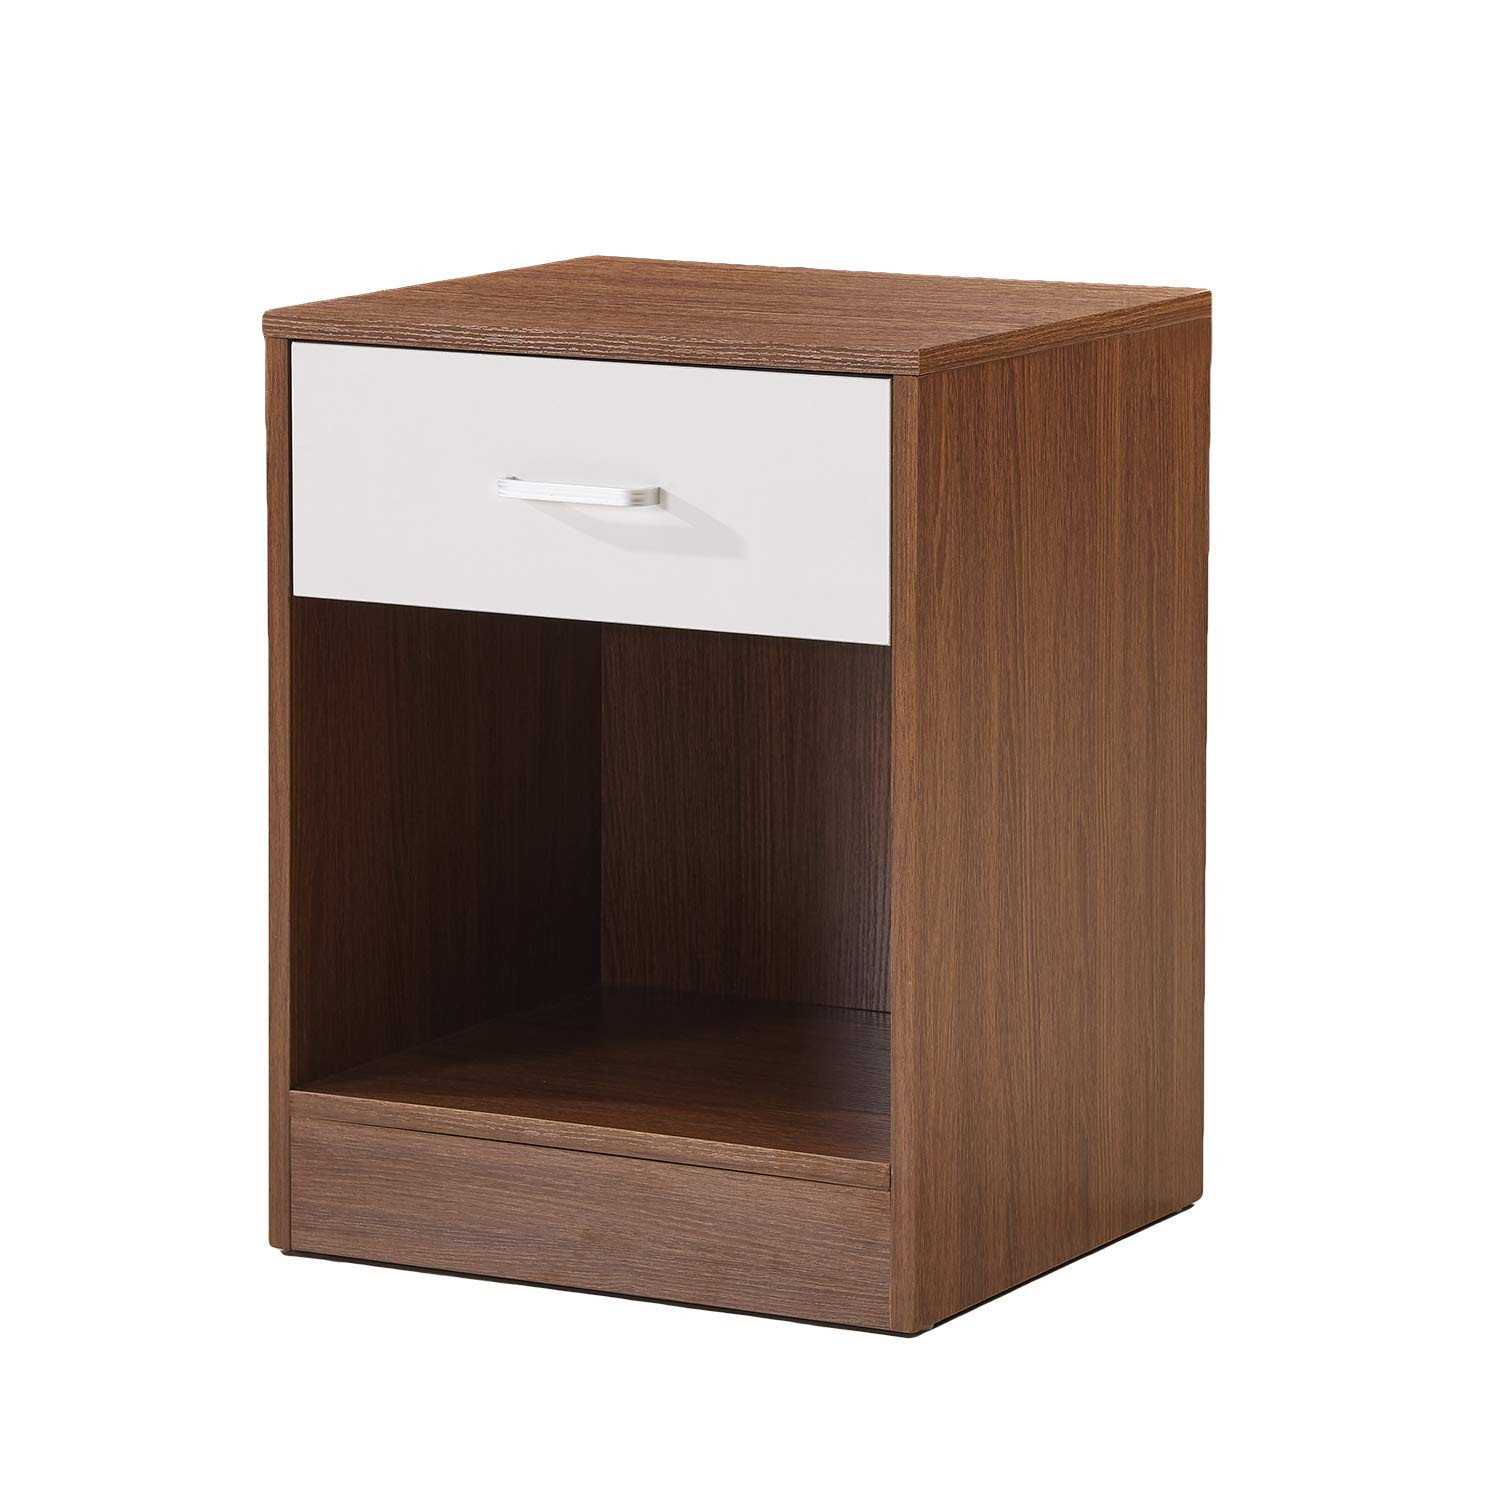 winsome wood single drawer kitchen cabinet storage cart beautiful yanni night stand accent table with and tall bedside tables drawers black white lamps wine rack butler side ott